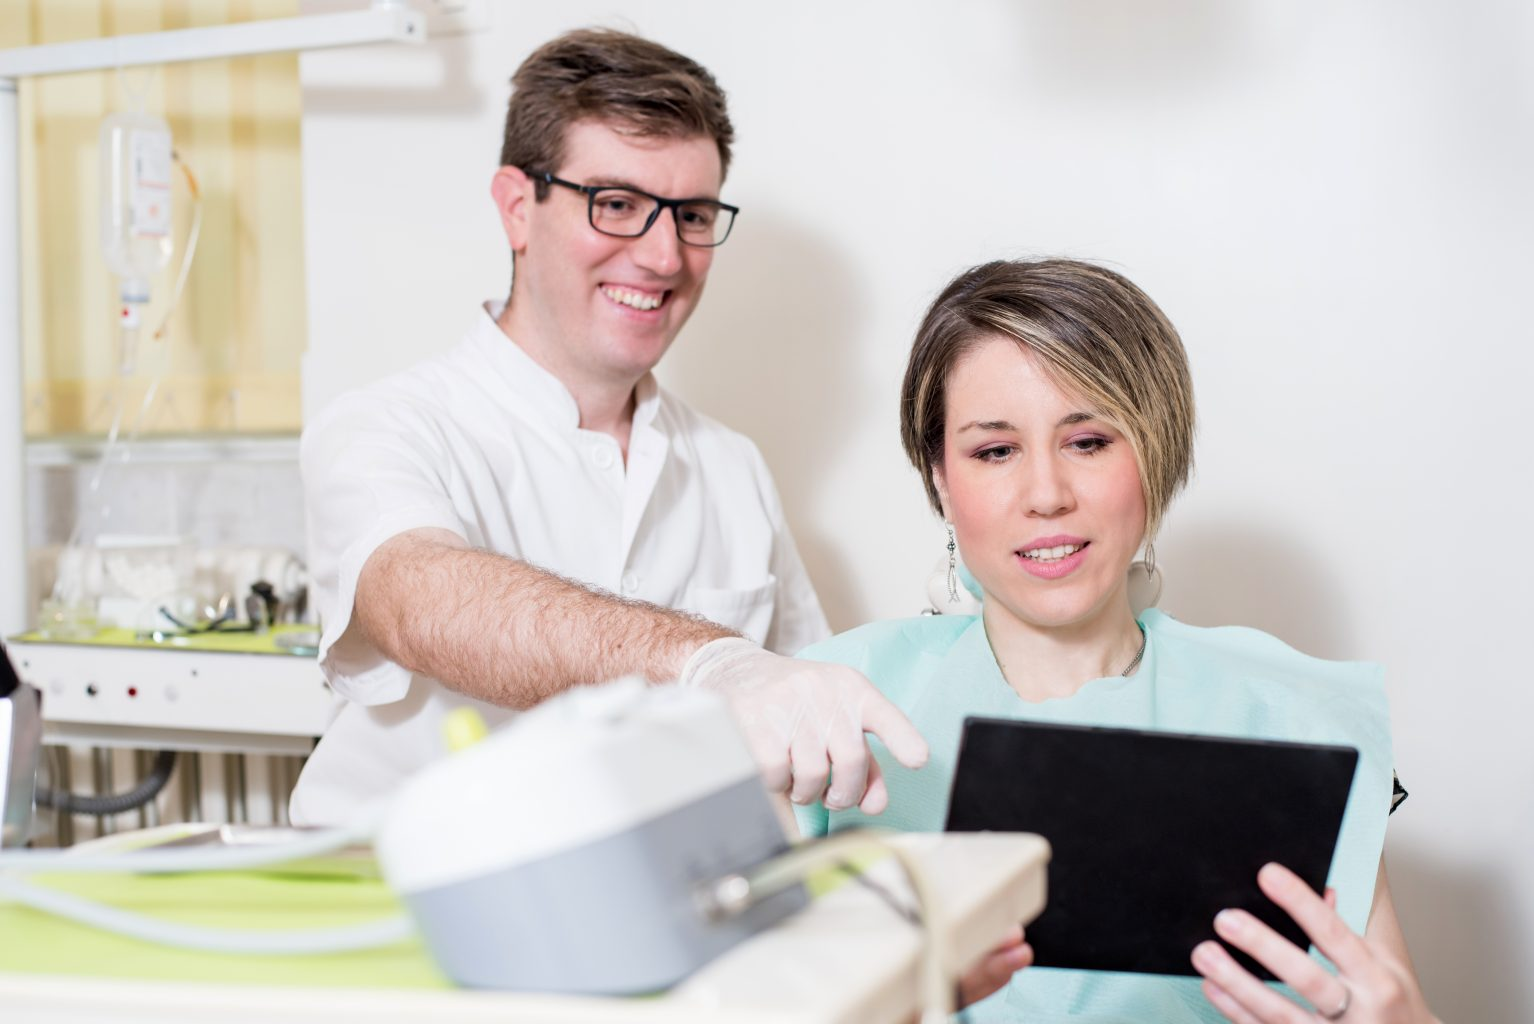 How to Use Dental Intel to Grow Your Dental Practice